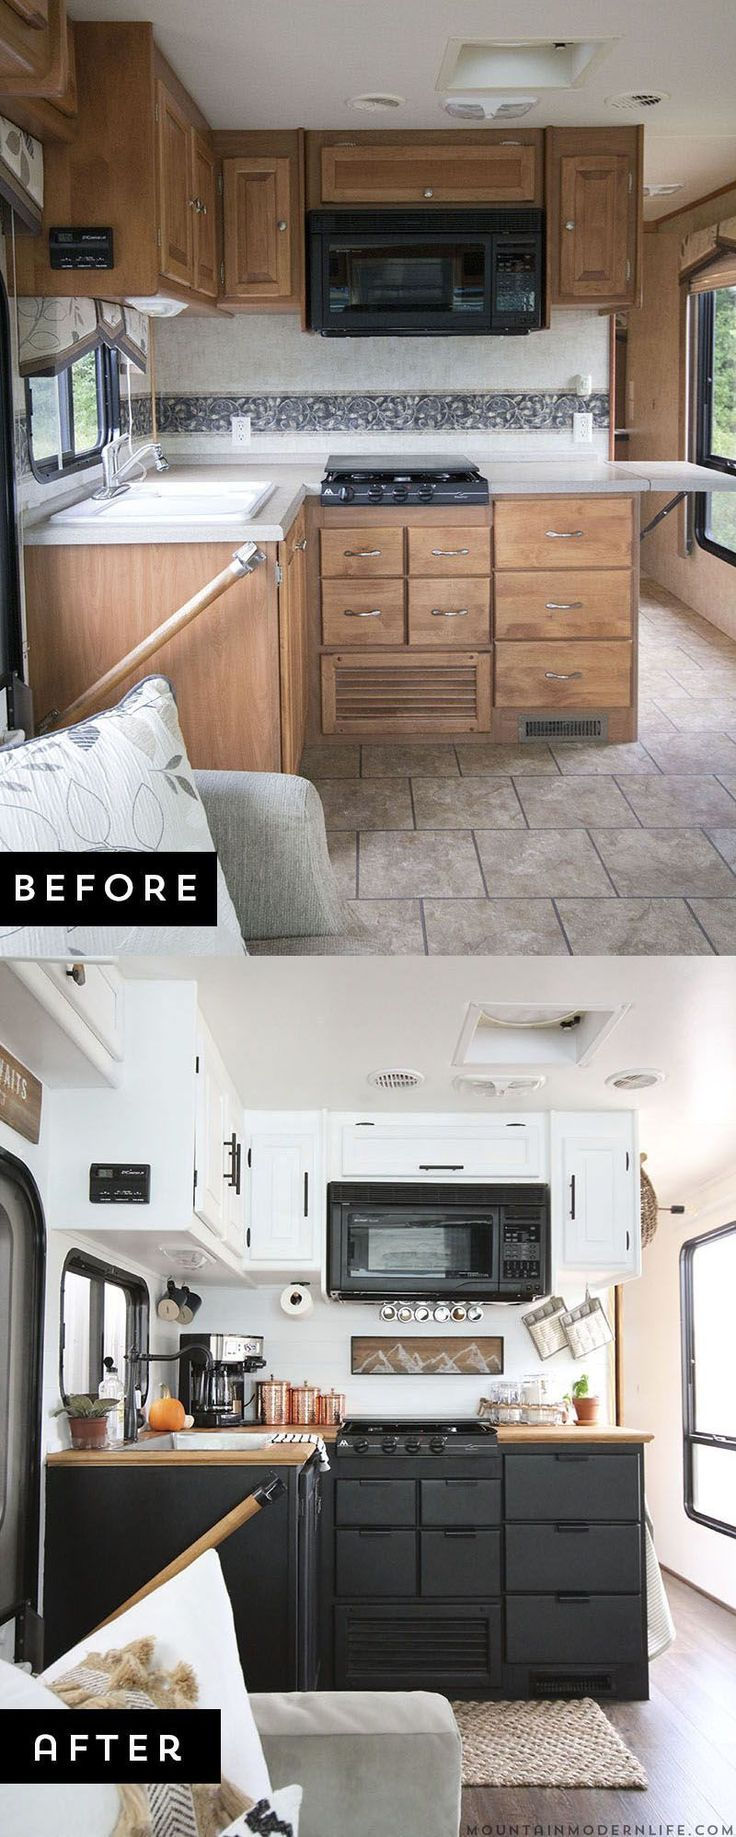 17 Best Ideas About Rv Remodeling On Pinterest Camper